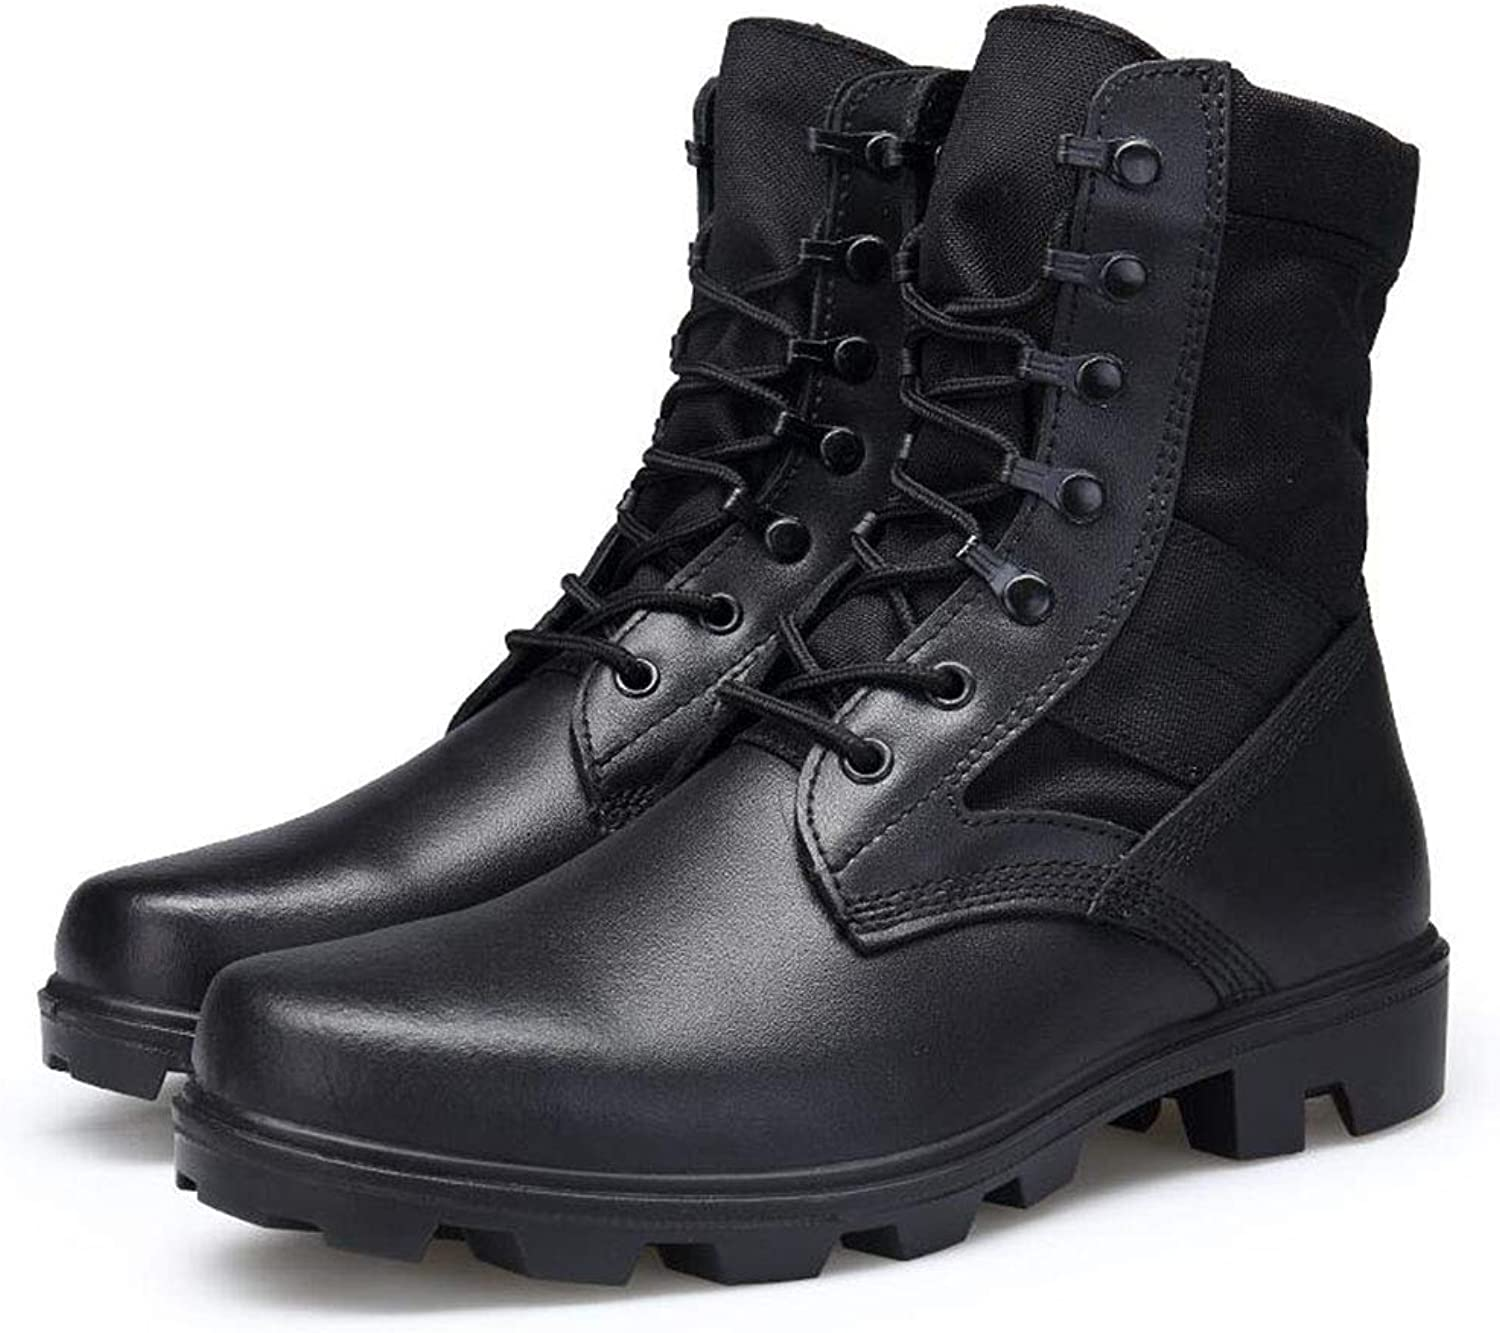 Men's Combat Boots High-Top Outdoor Lace-Up Boots Non Slip Waterproof Hiking shoes Camping shoes,Black,42